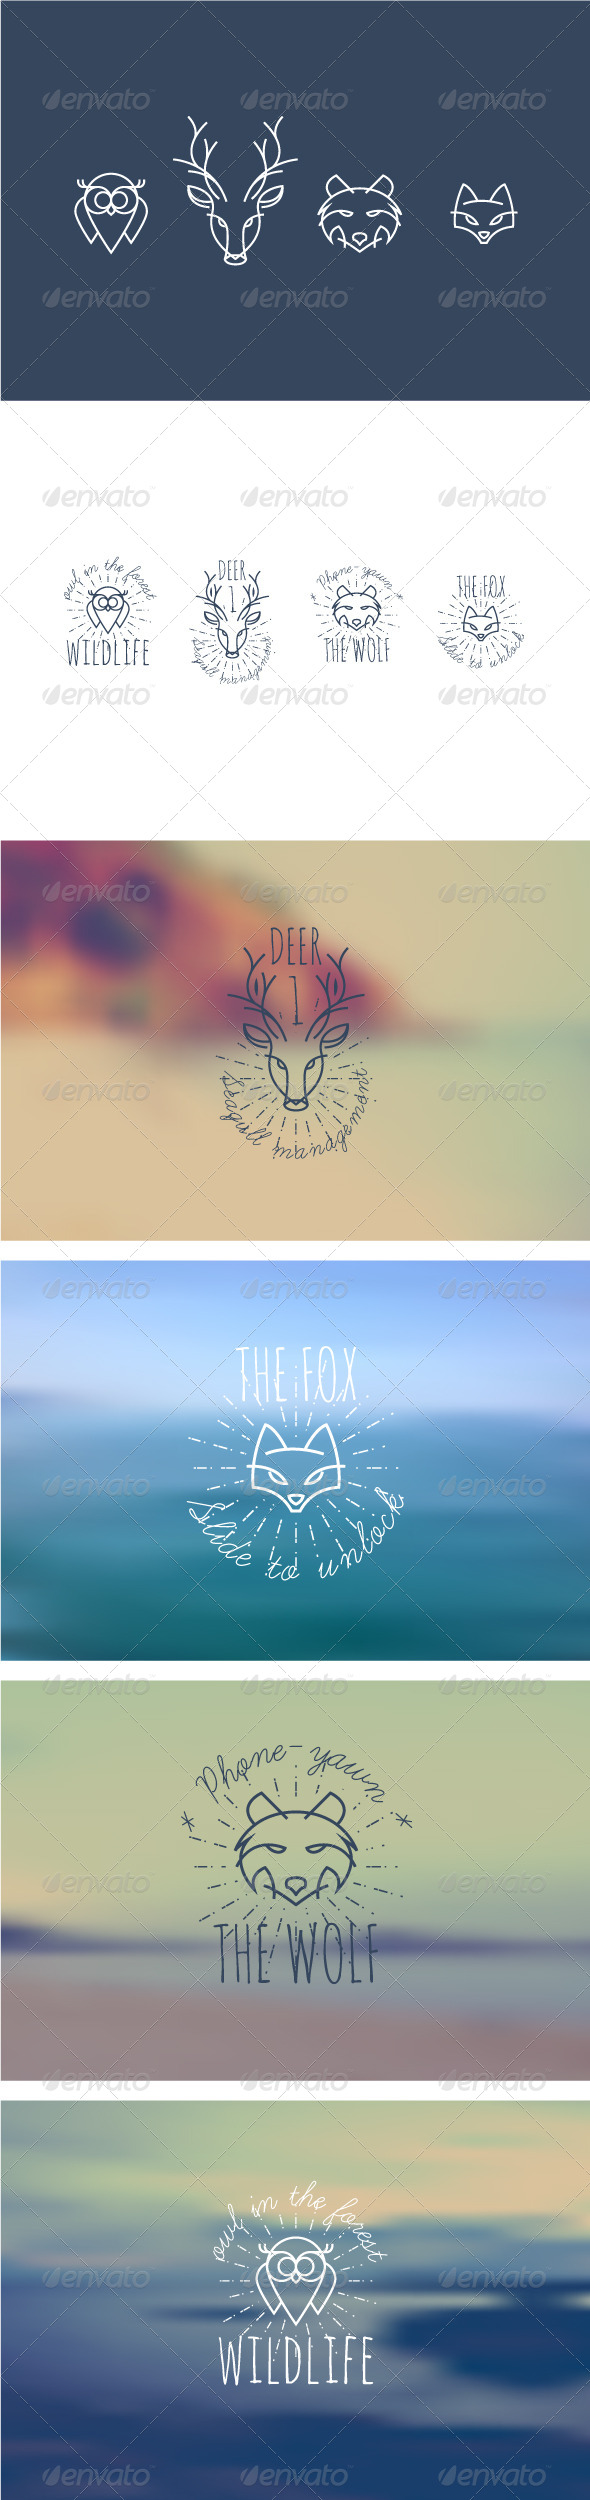 Animal Insignias - Tattoos Vectors